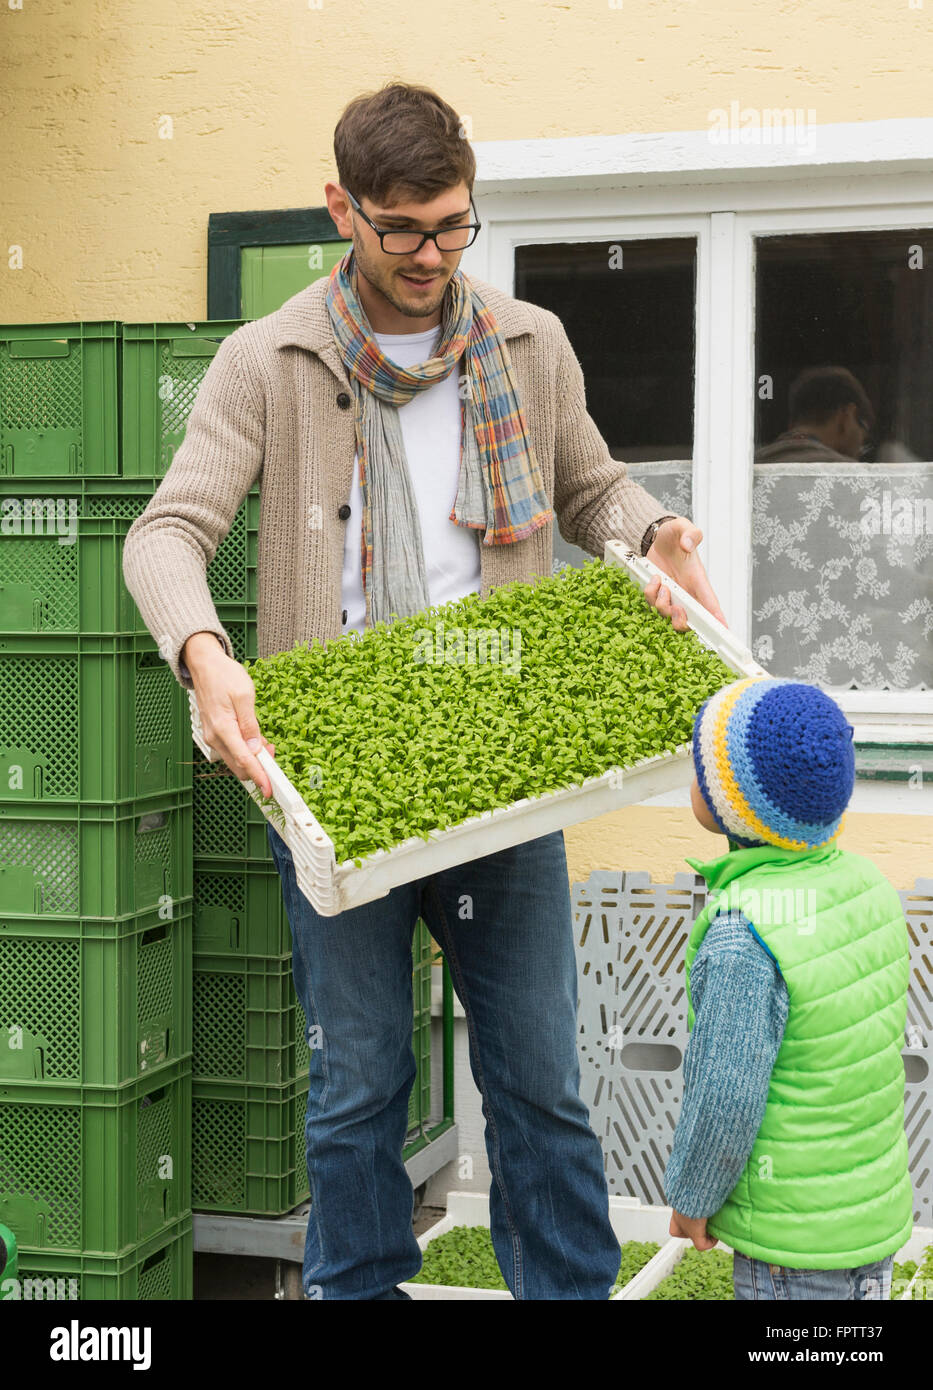 Organic farmer showing a plant crate for salad to his son in farm, Bavaria, Germany - Stock Image